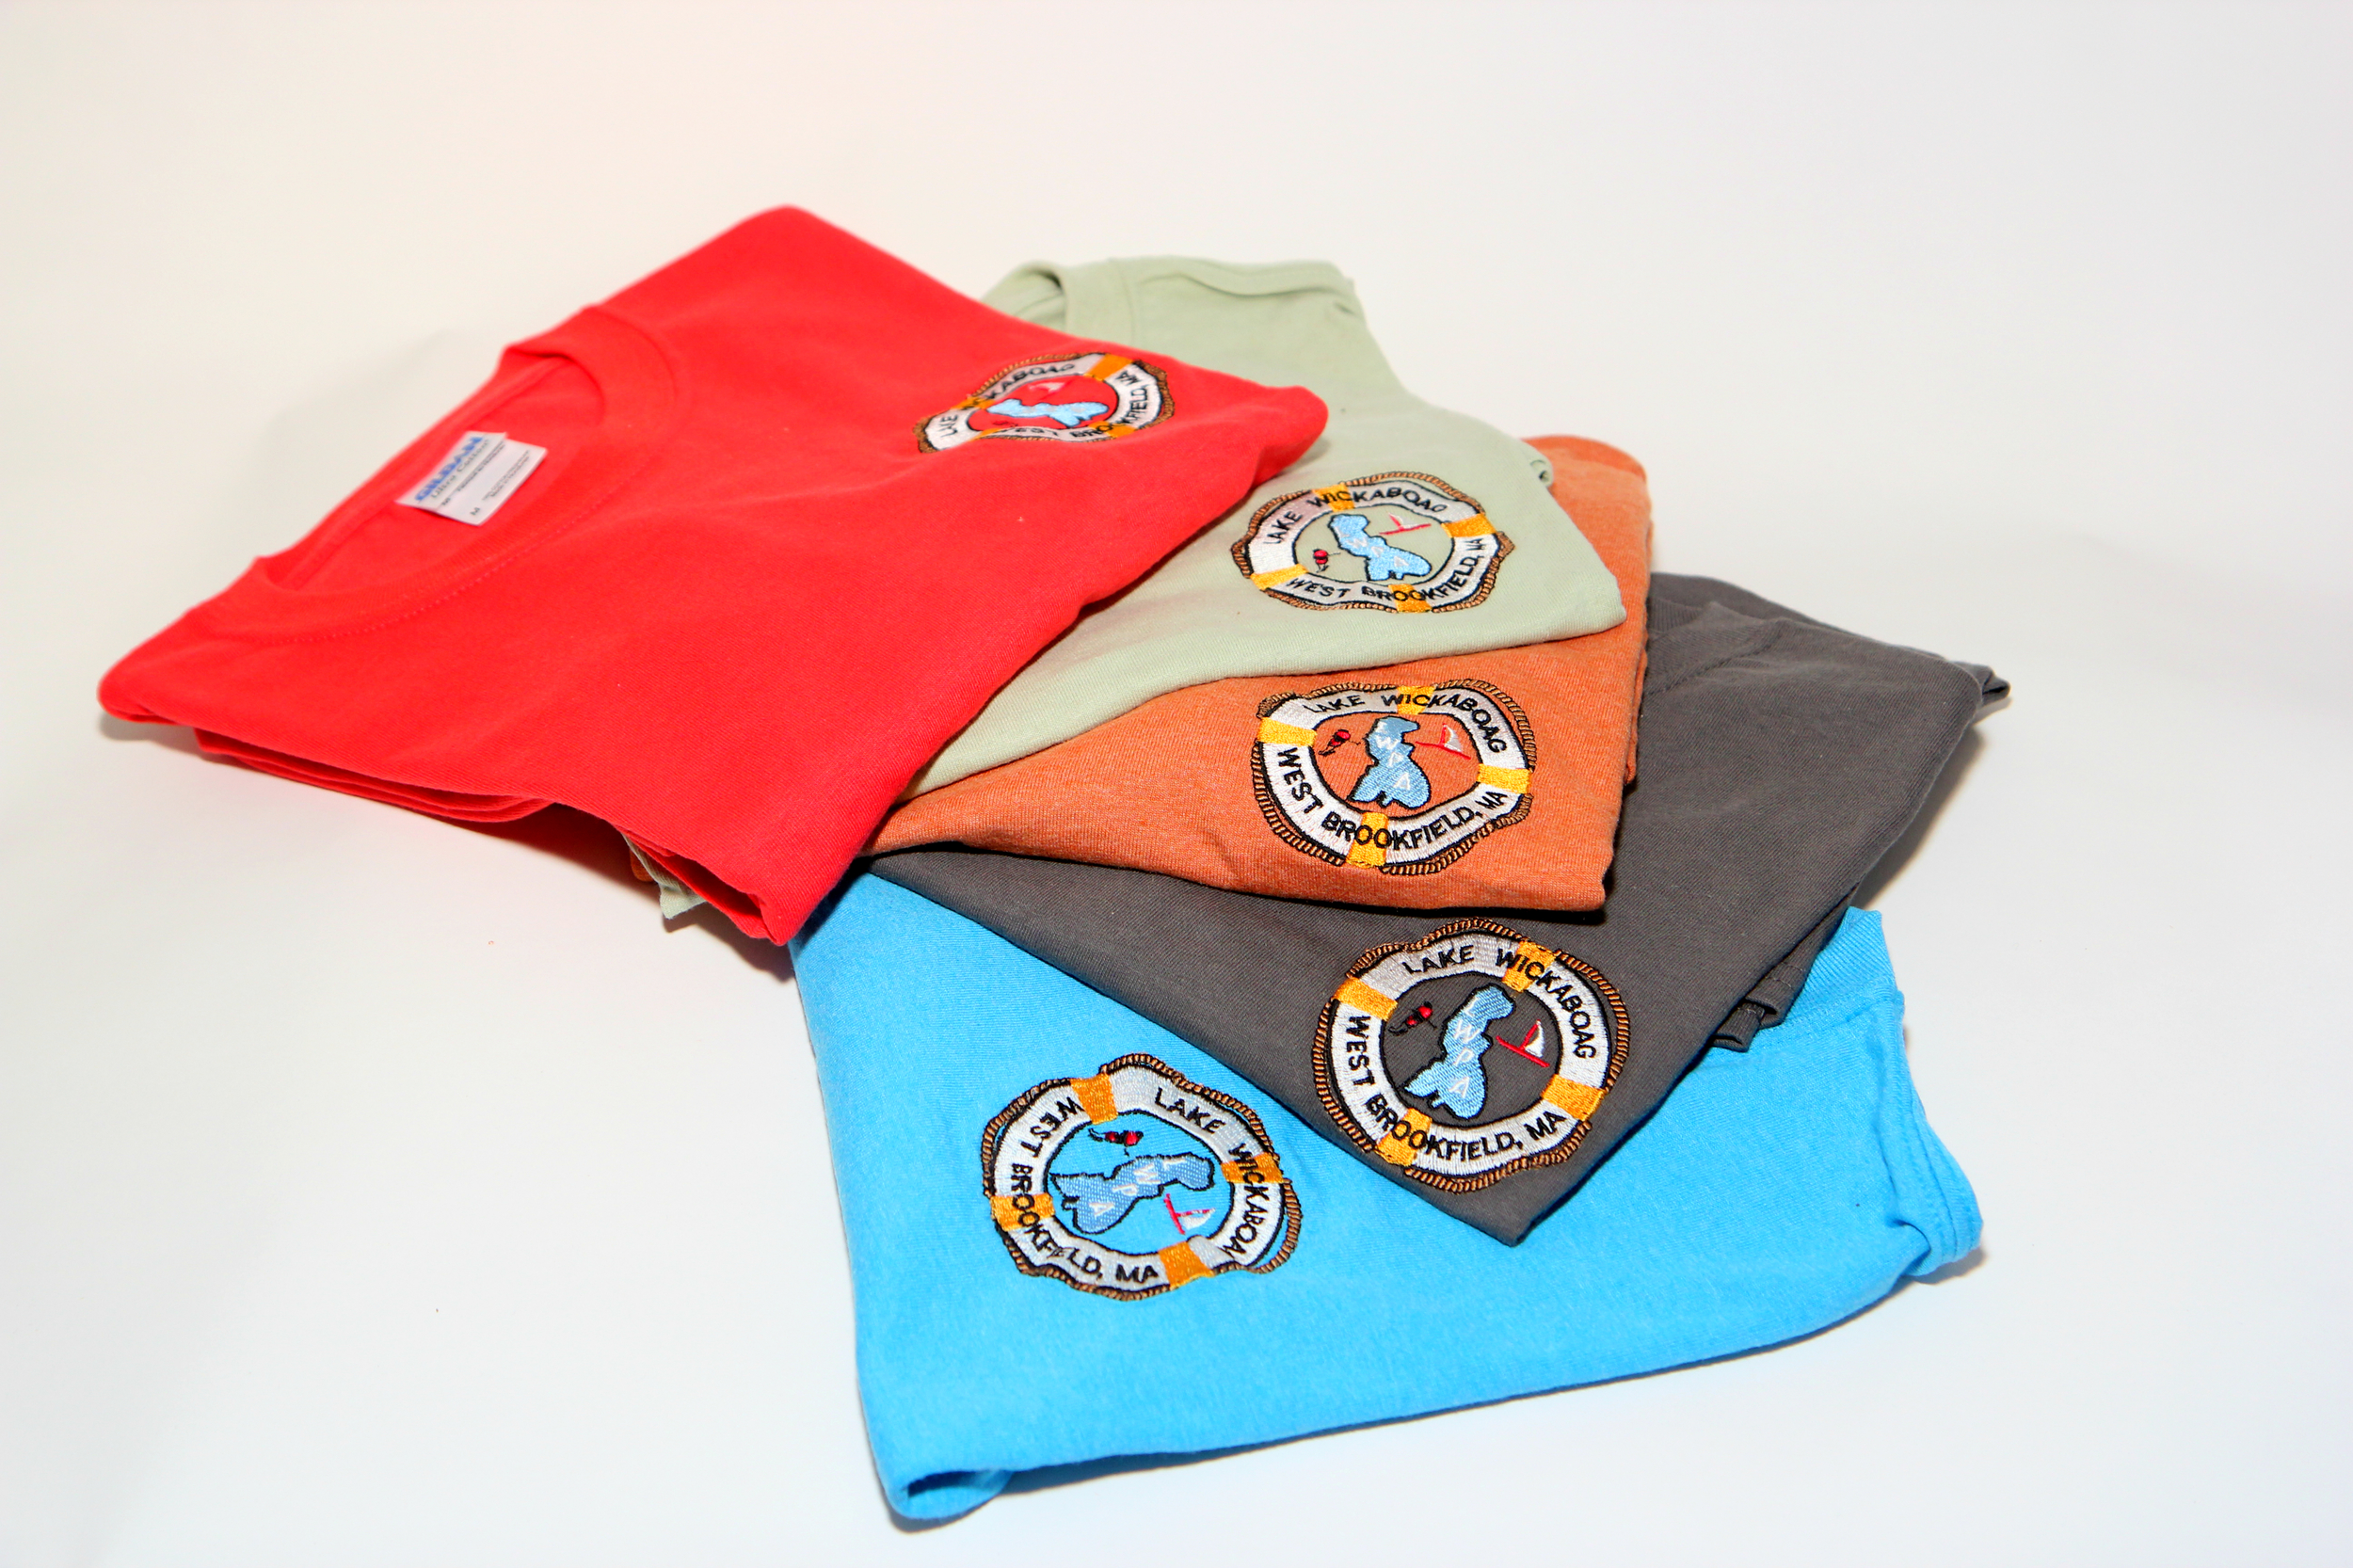 Adult Tee Shirts with embroidered logo $15-$20